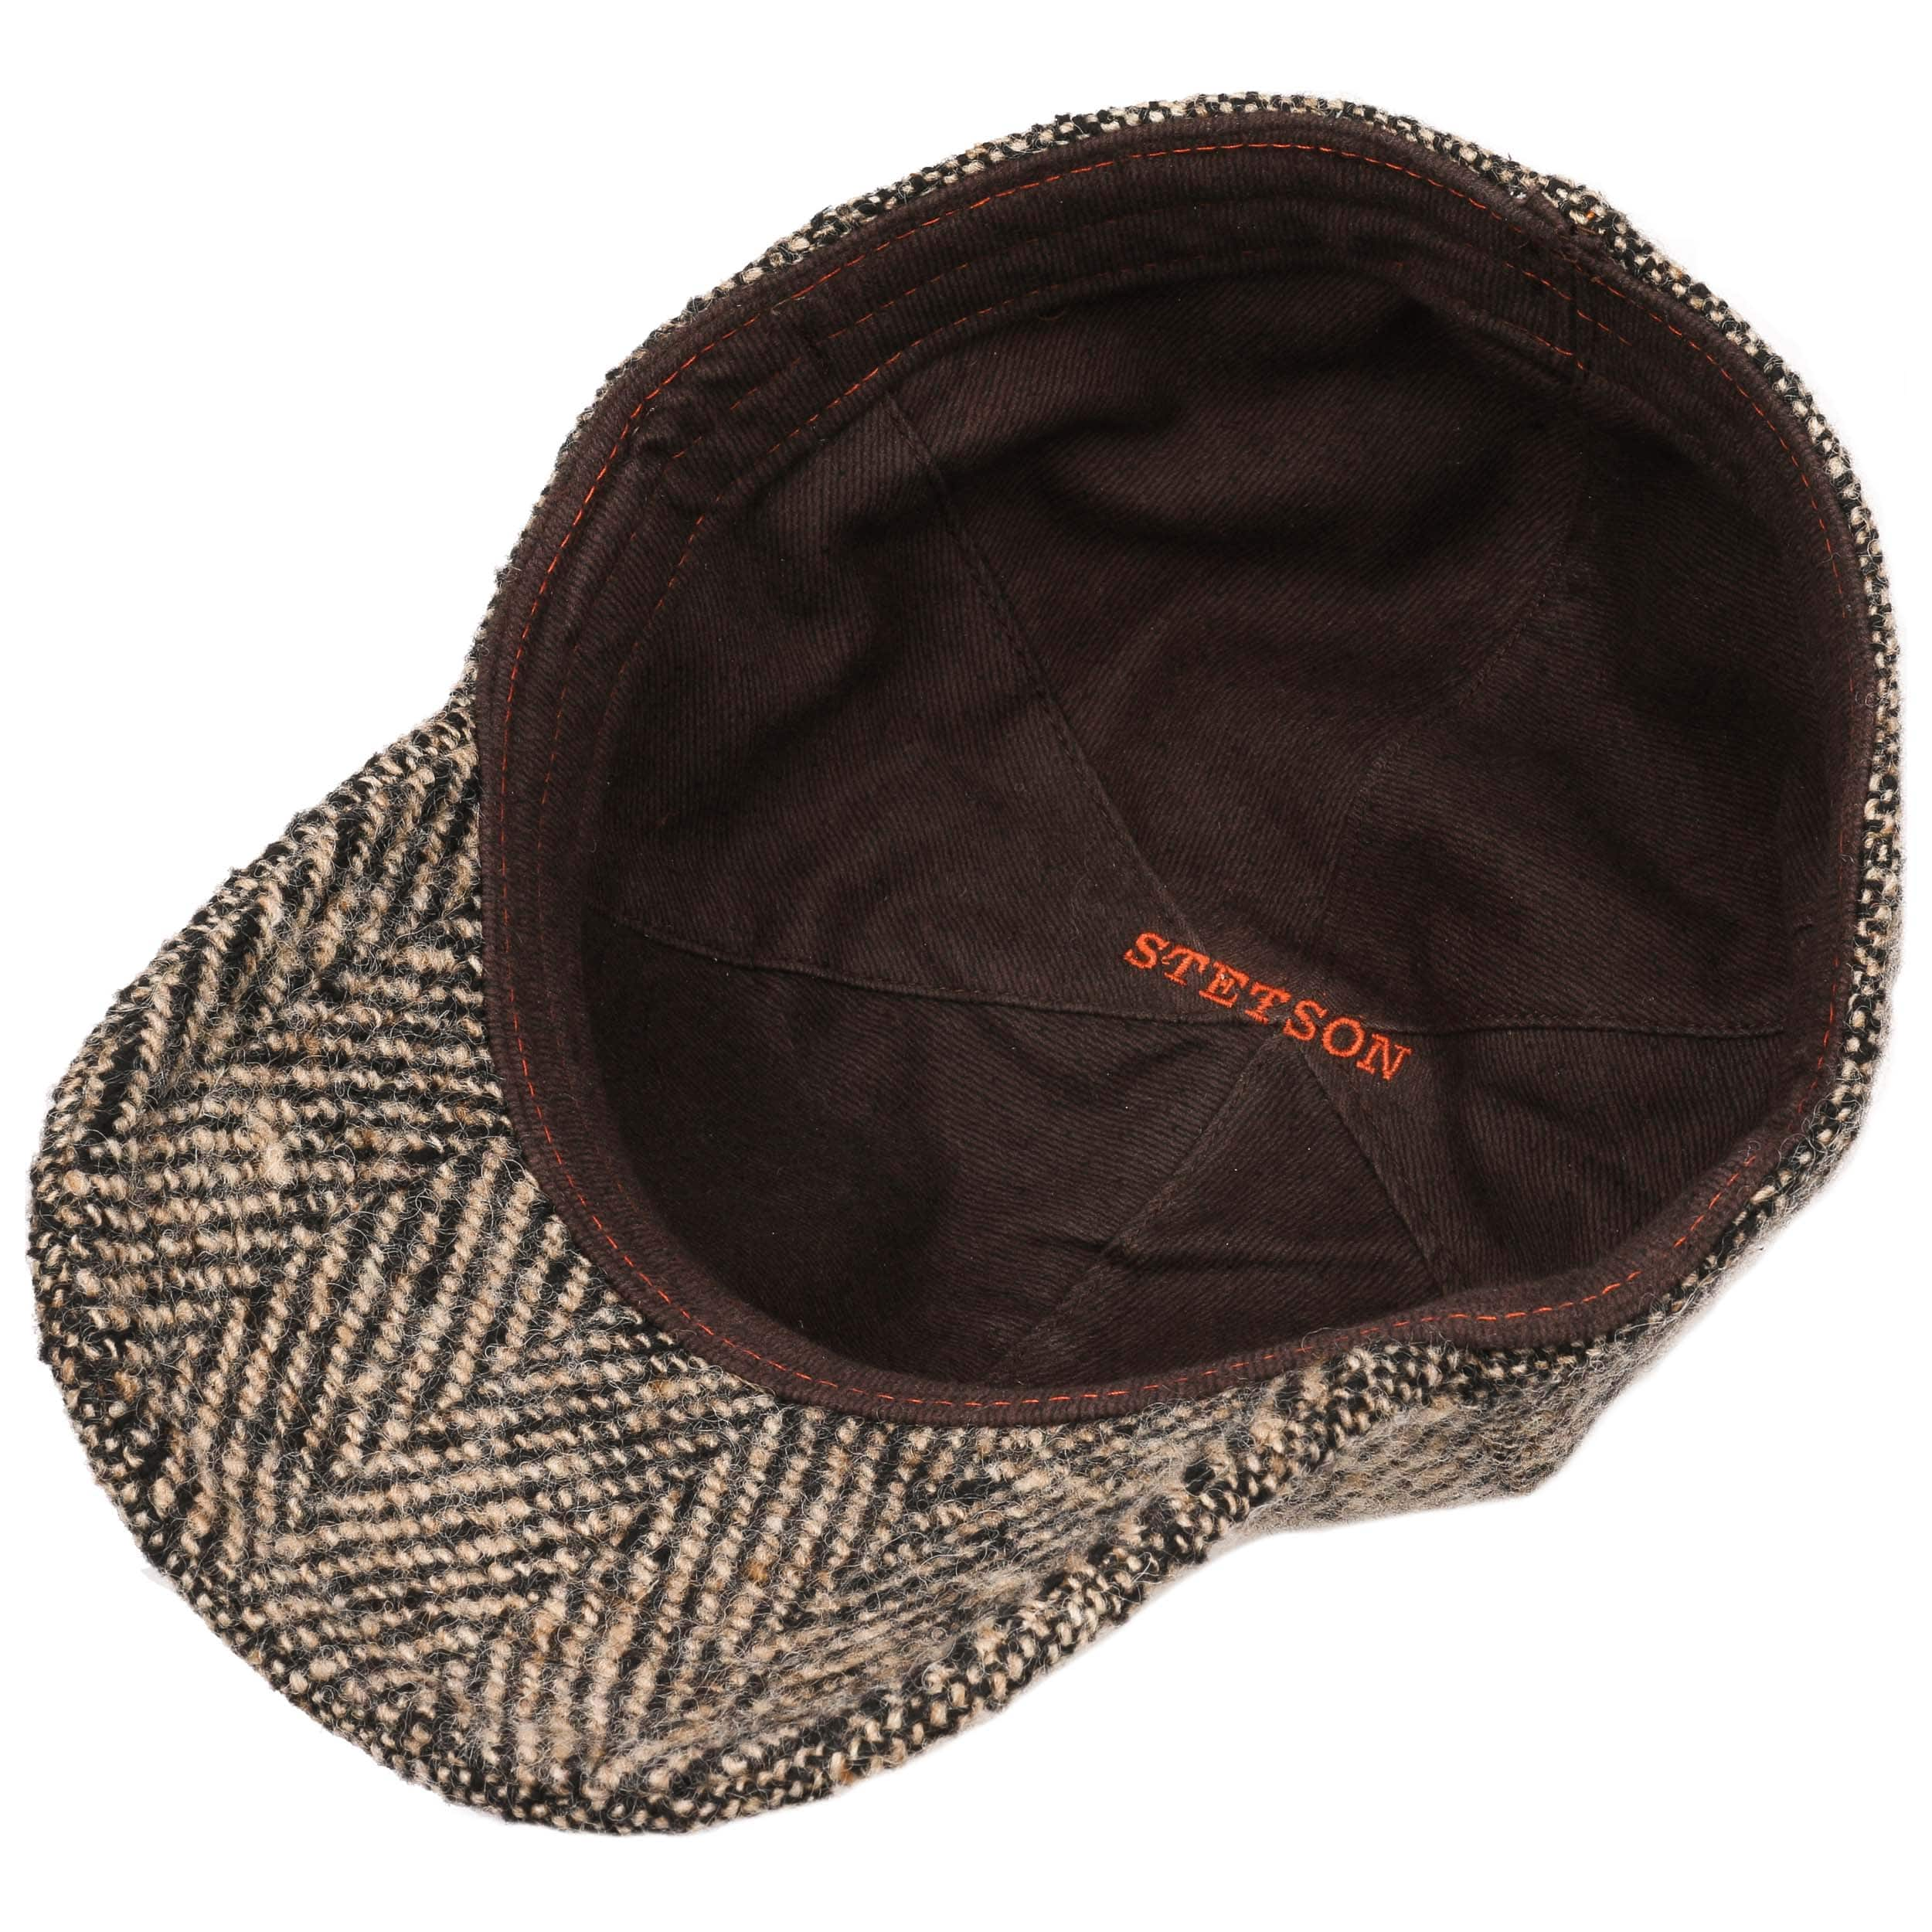 ab090e68981 ... Campbell Virgin Wool Cap by Stetson - brown 2 ...